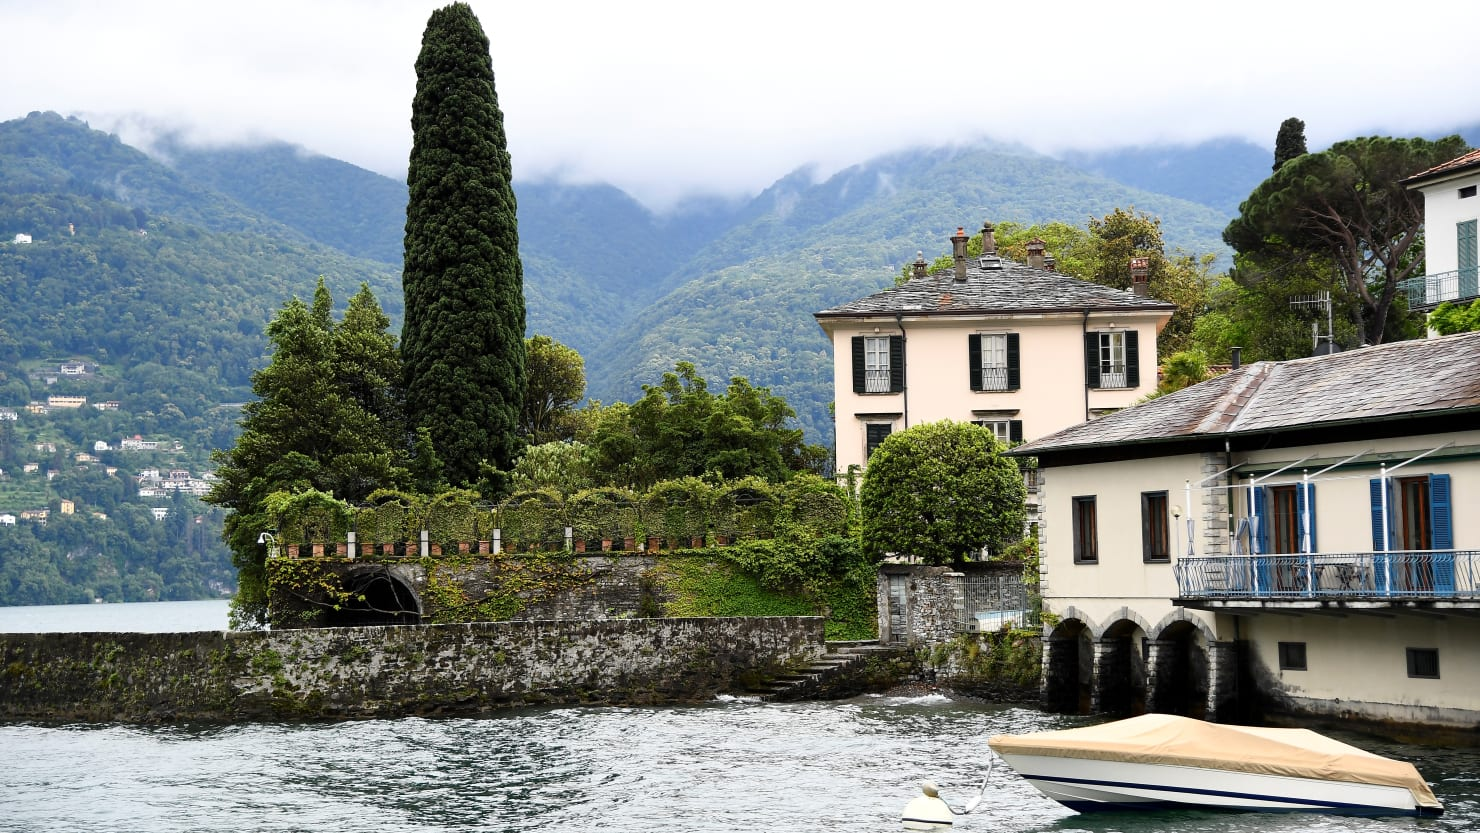 George Clooney Has Plumbing Disaster as Obamas Visit Lake Como Villa